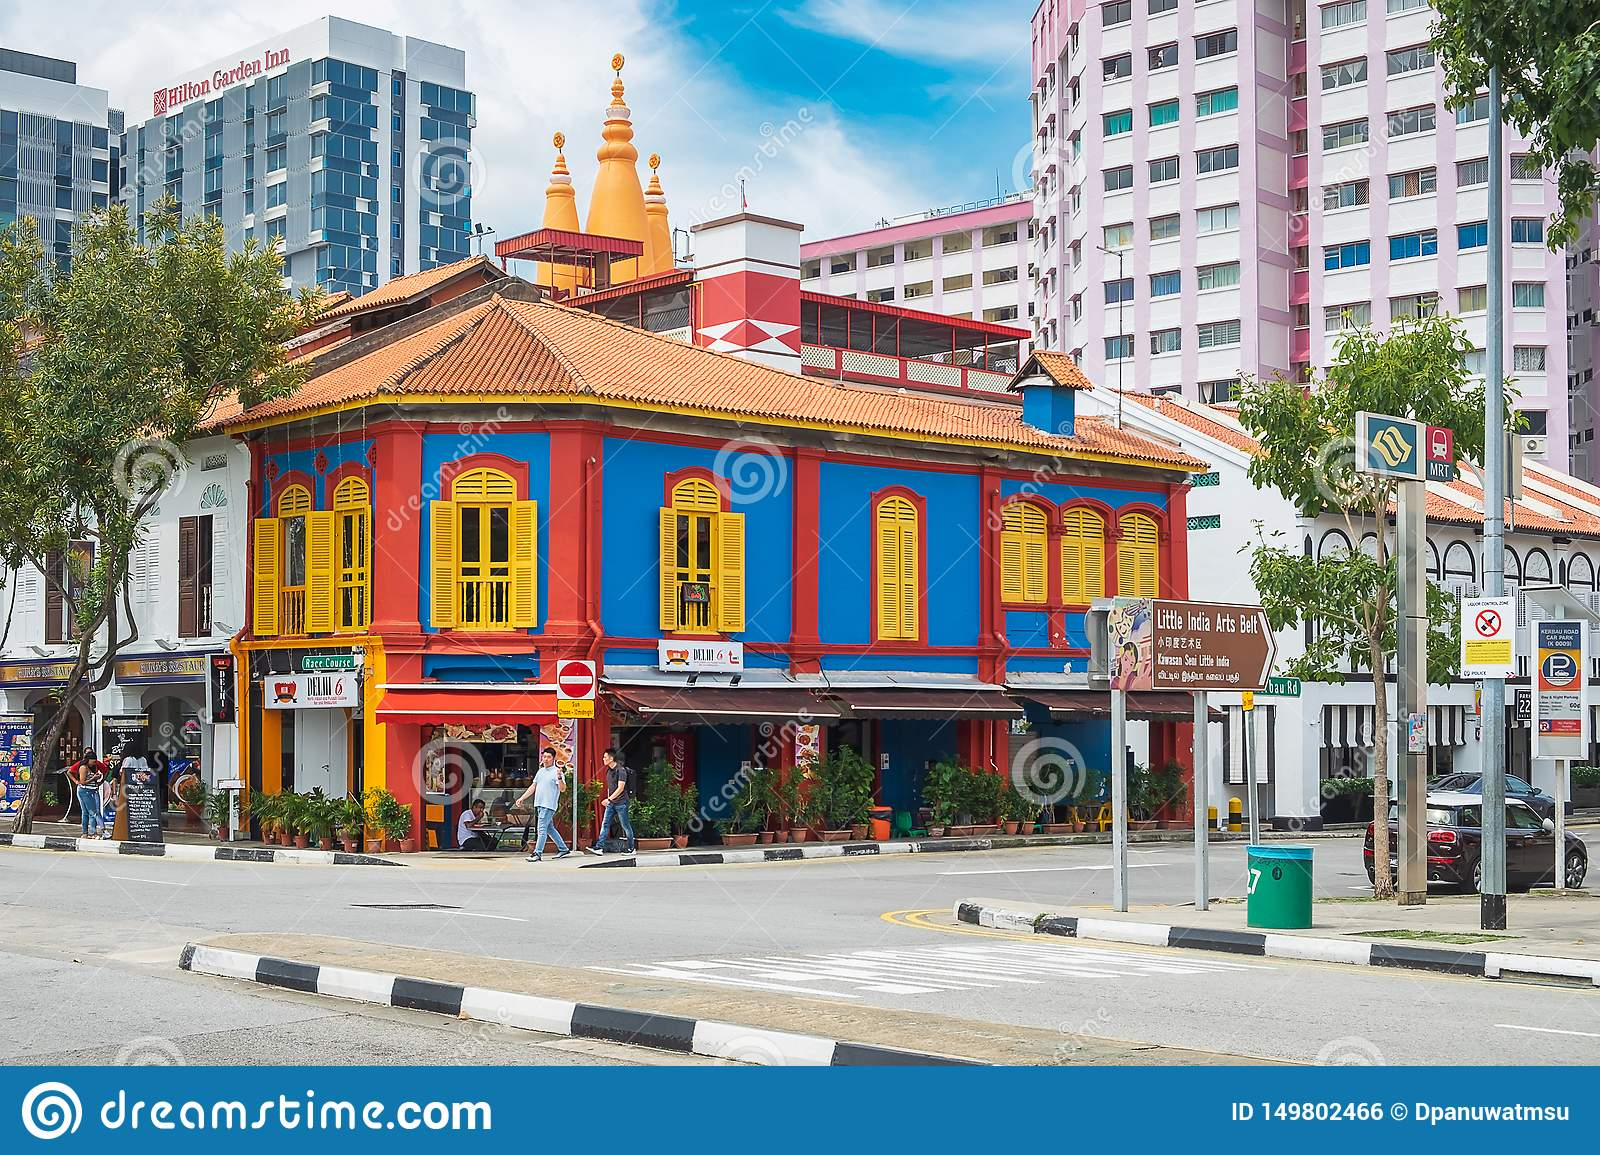 Colorful facade architecture building, Vibrant color of wooden windows in Little India district, landmark and popular for tourist